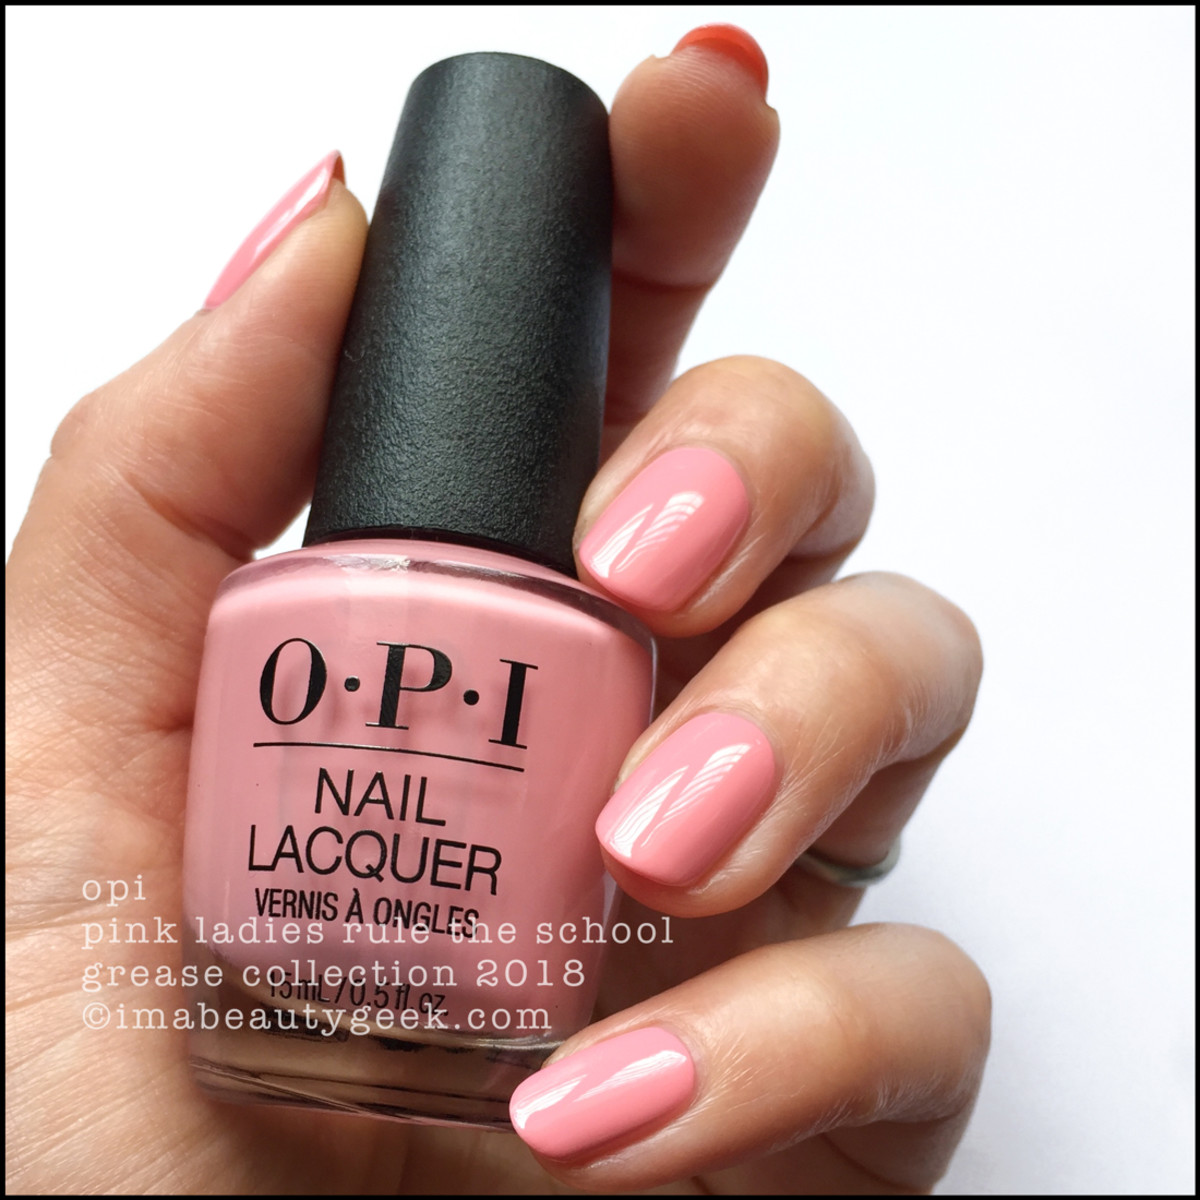 OPI Pink Ladies Rule The School - OPI Grease 2018